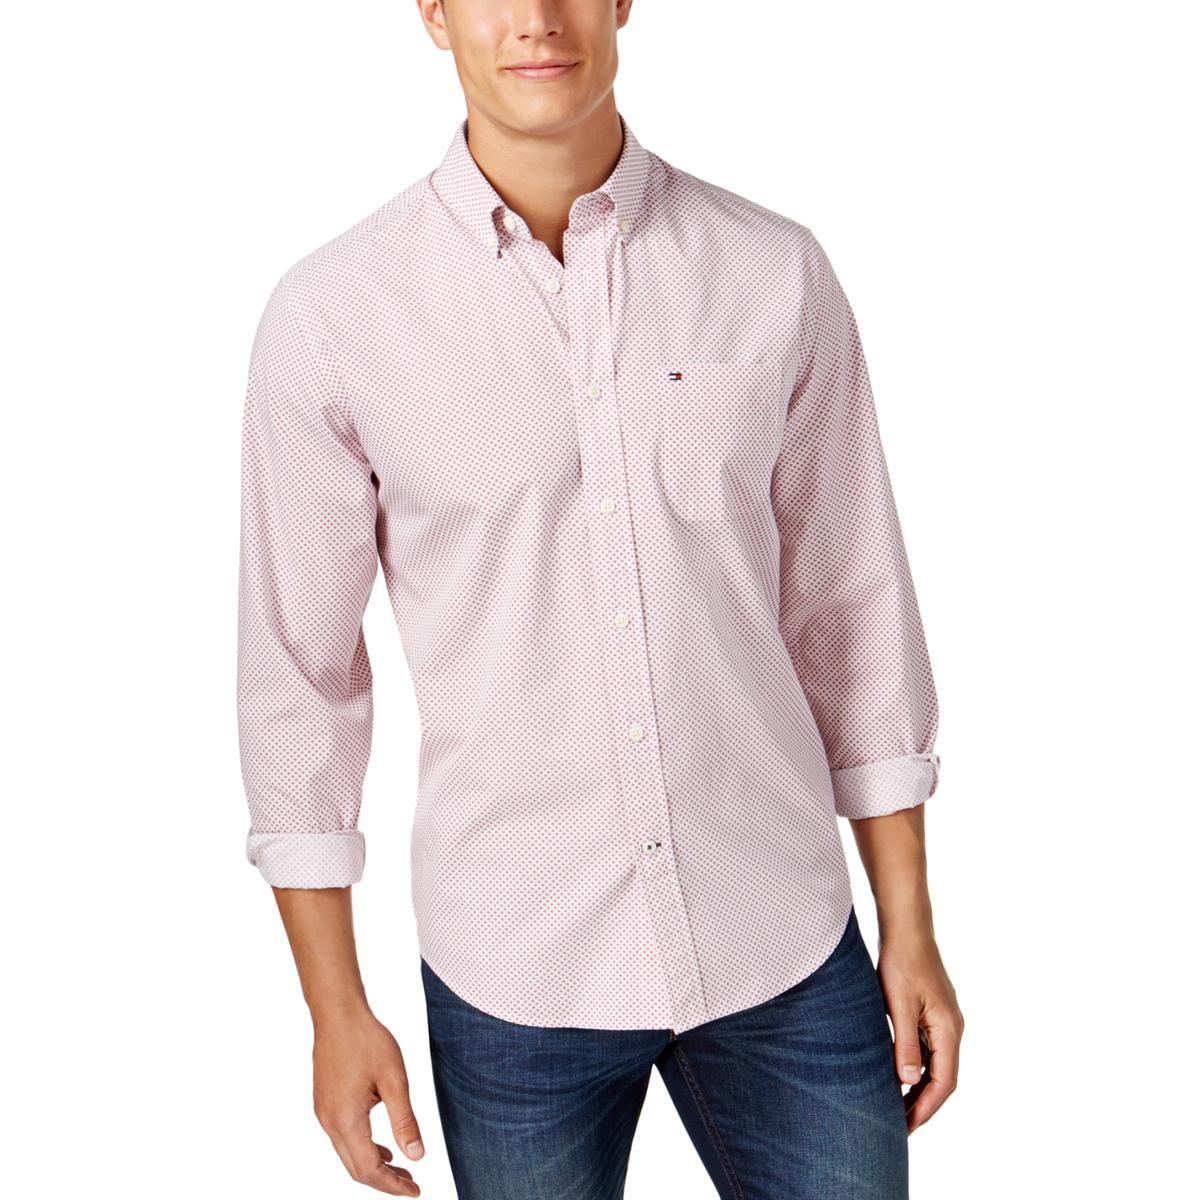 05b1ebe3b911 Lyst - Tommy Hilfiger Mens Classic Fit Long Sleeve Button-down Shirt ...